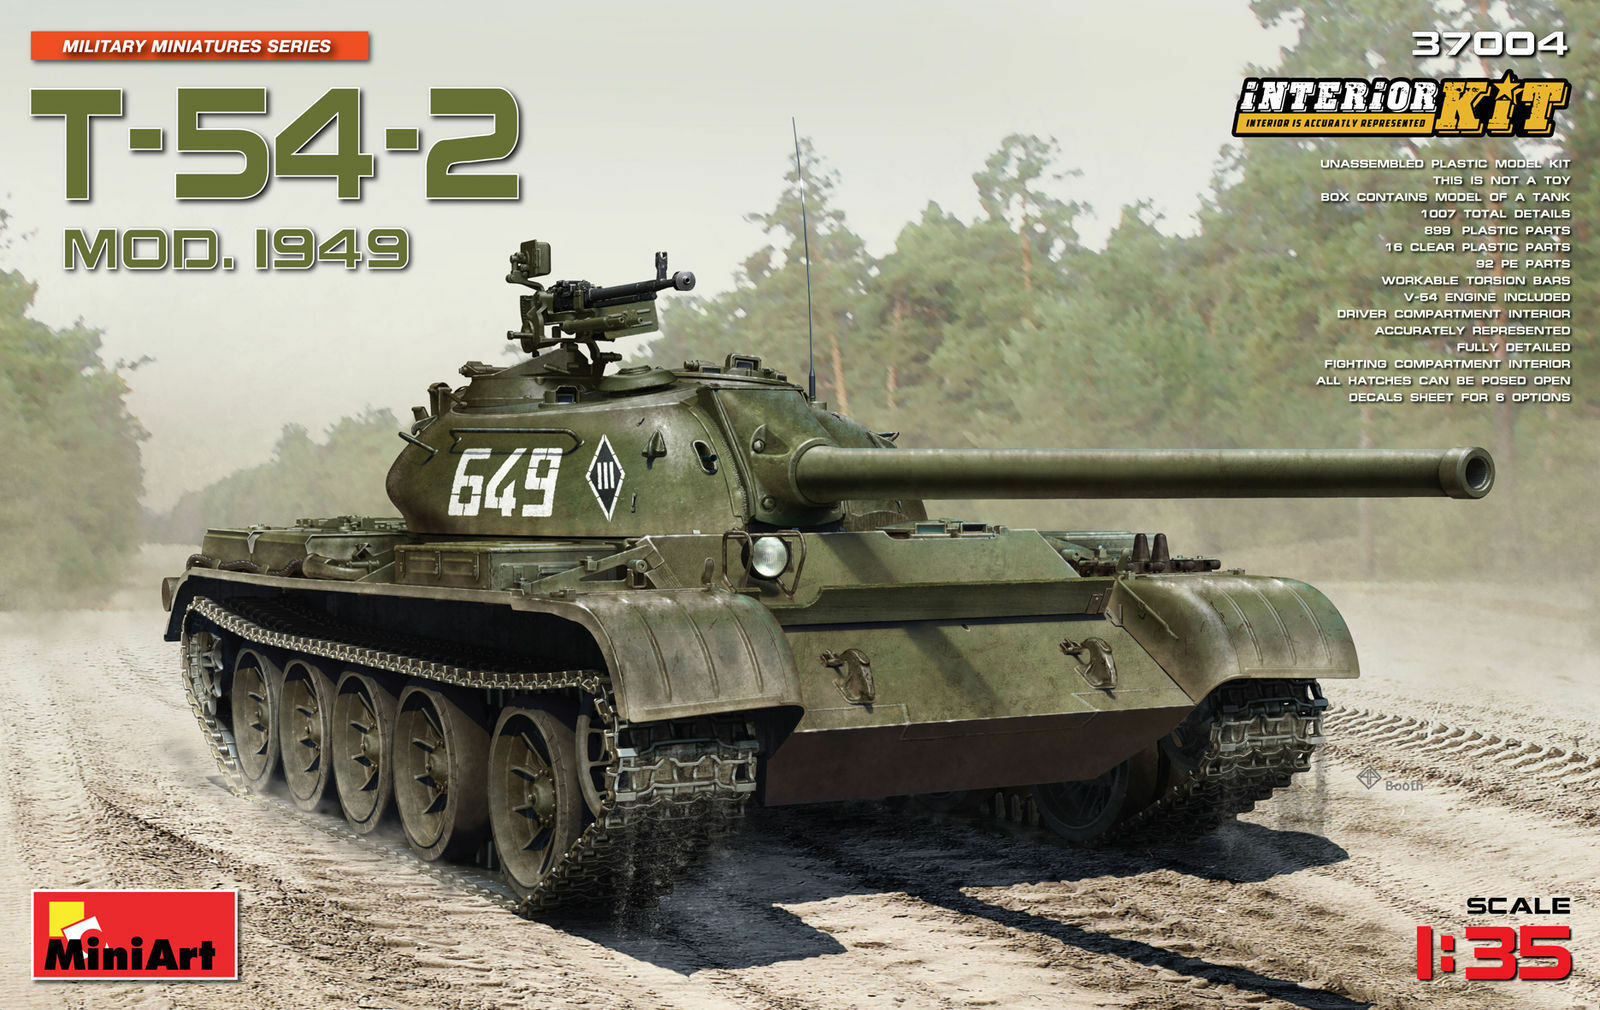 MINIART 37004  1 35 T-54-2 Soviet Tank Mod. 1949 Interior Kit NEW